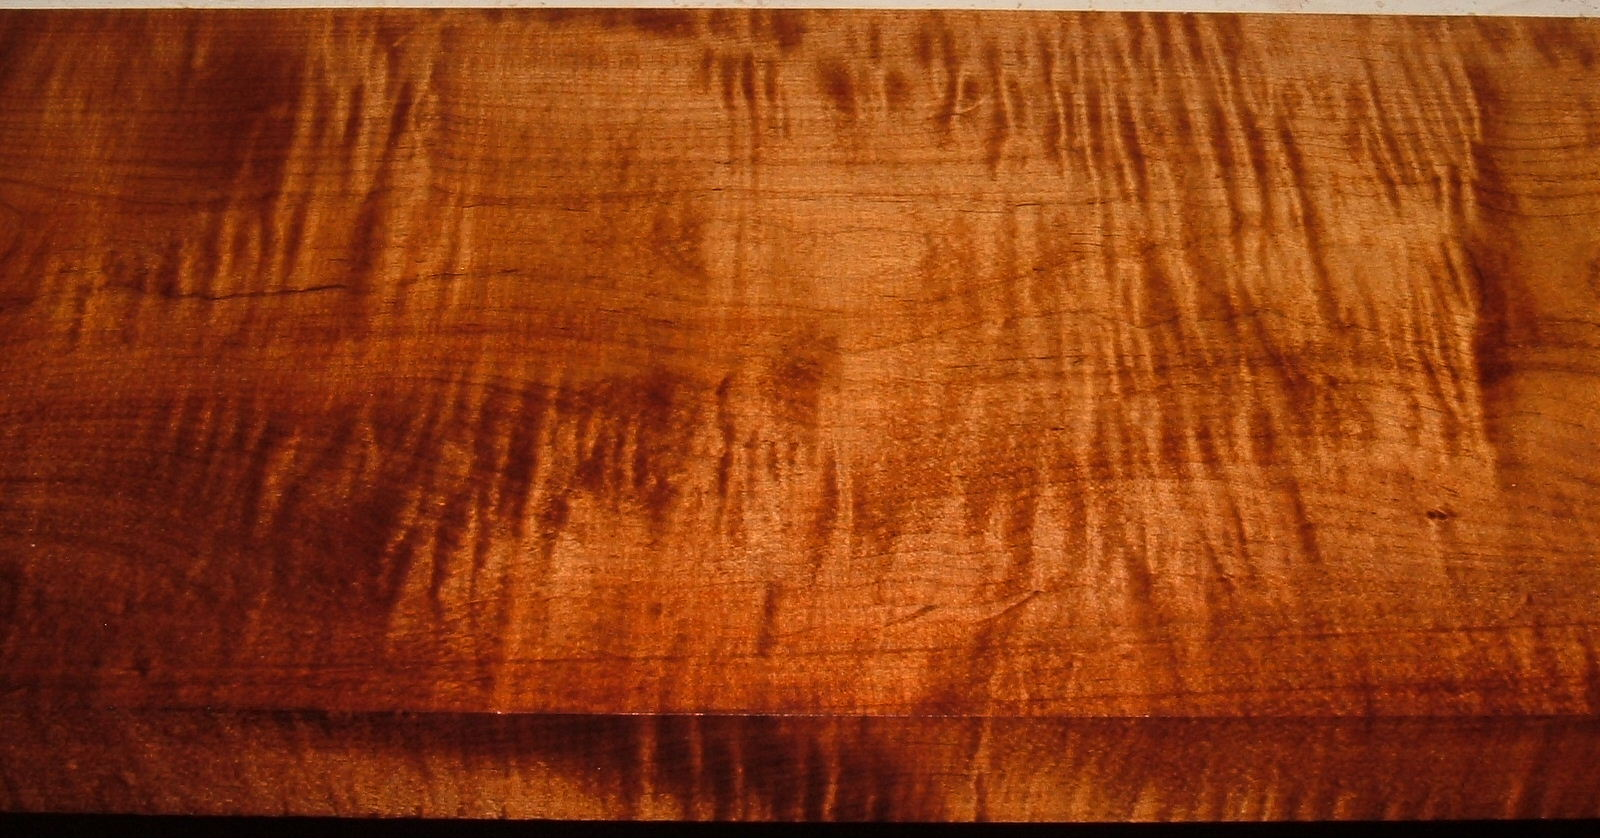 RM1908-35, 1-5/8x11-1/4x43, Roasted Torrefied, Curly Tiger Maple